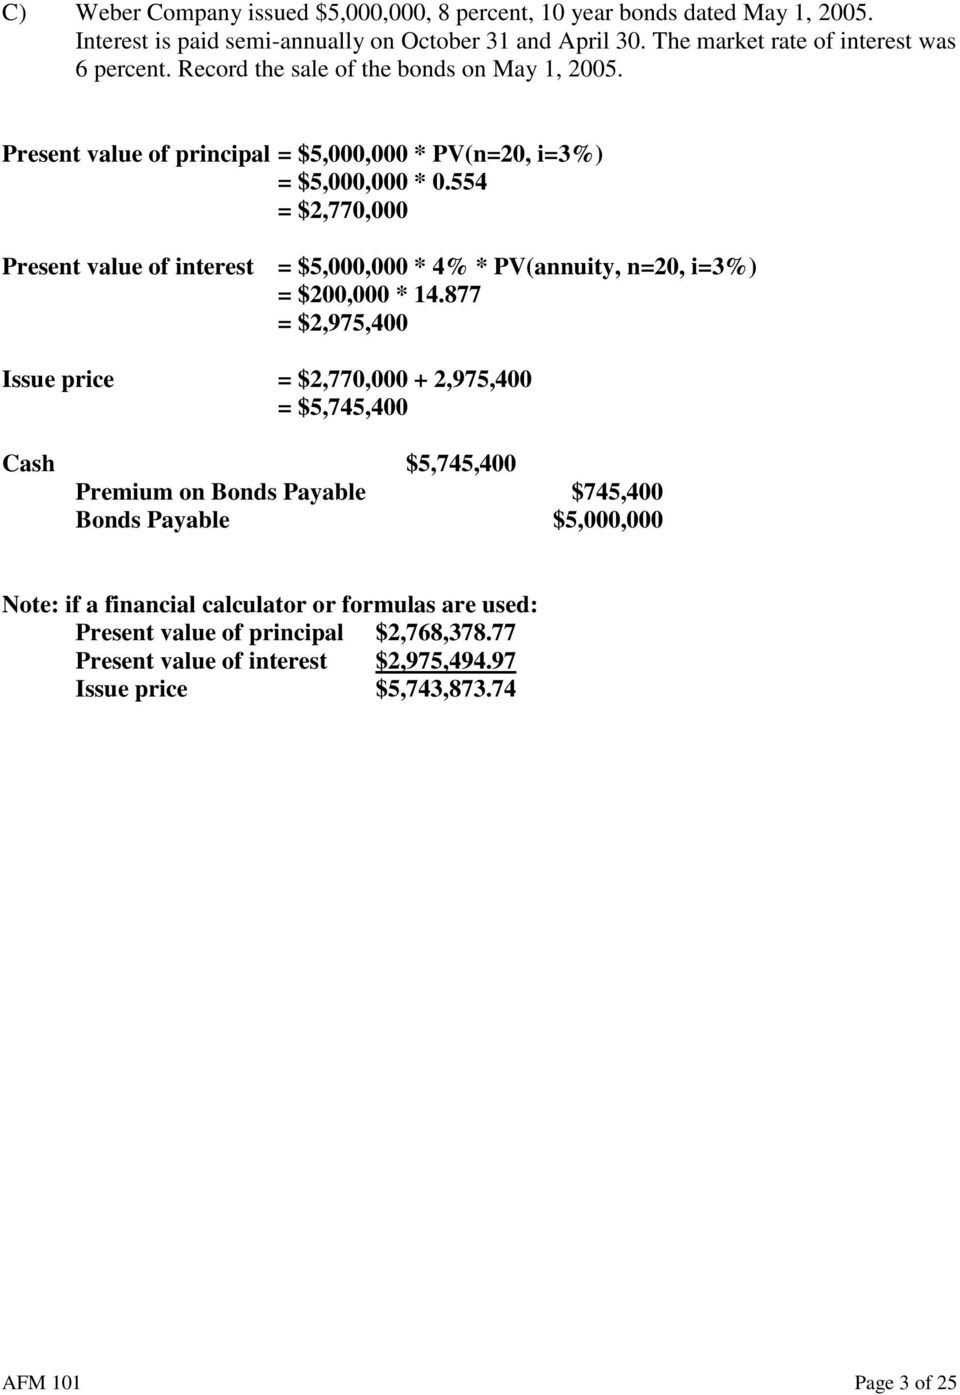 554 = $2,770,000 Present value of interest = $5,000,000 * 4% * PV(annuity, n=20, i=3%) = $200,000 * 14.